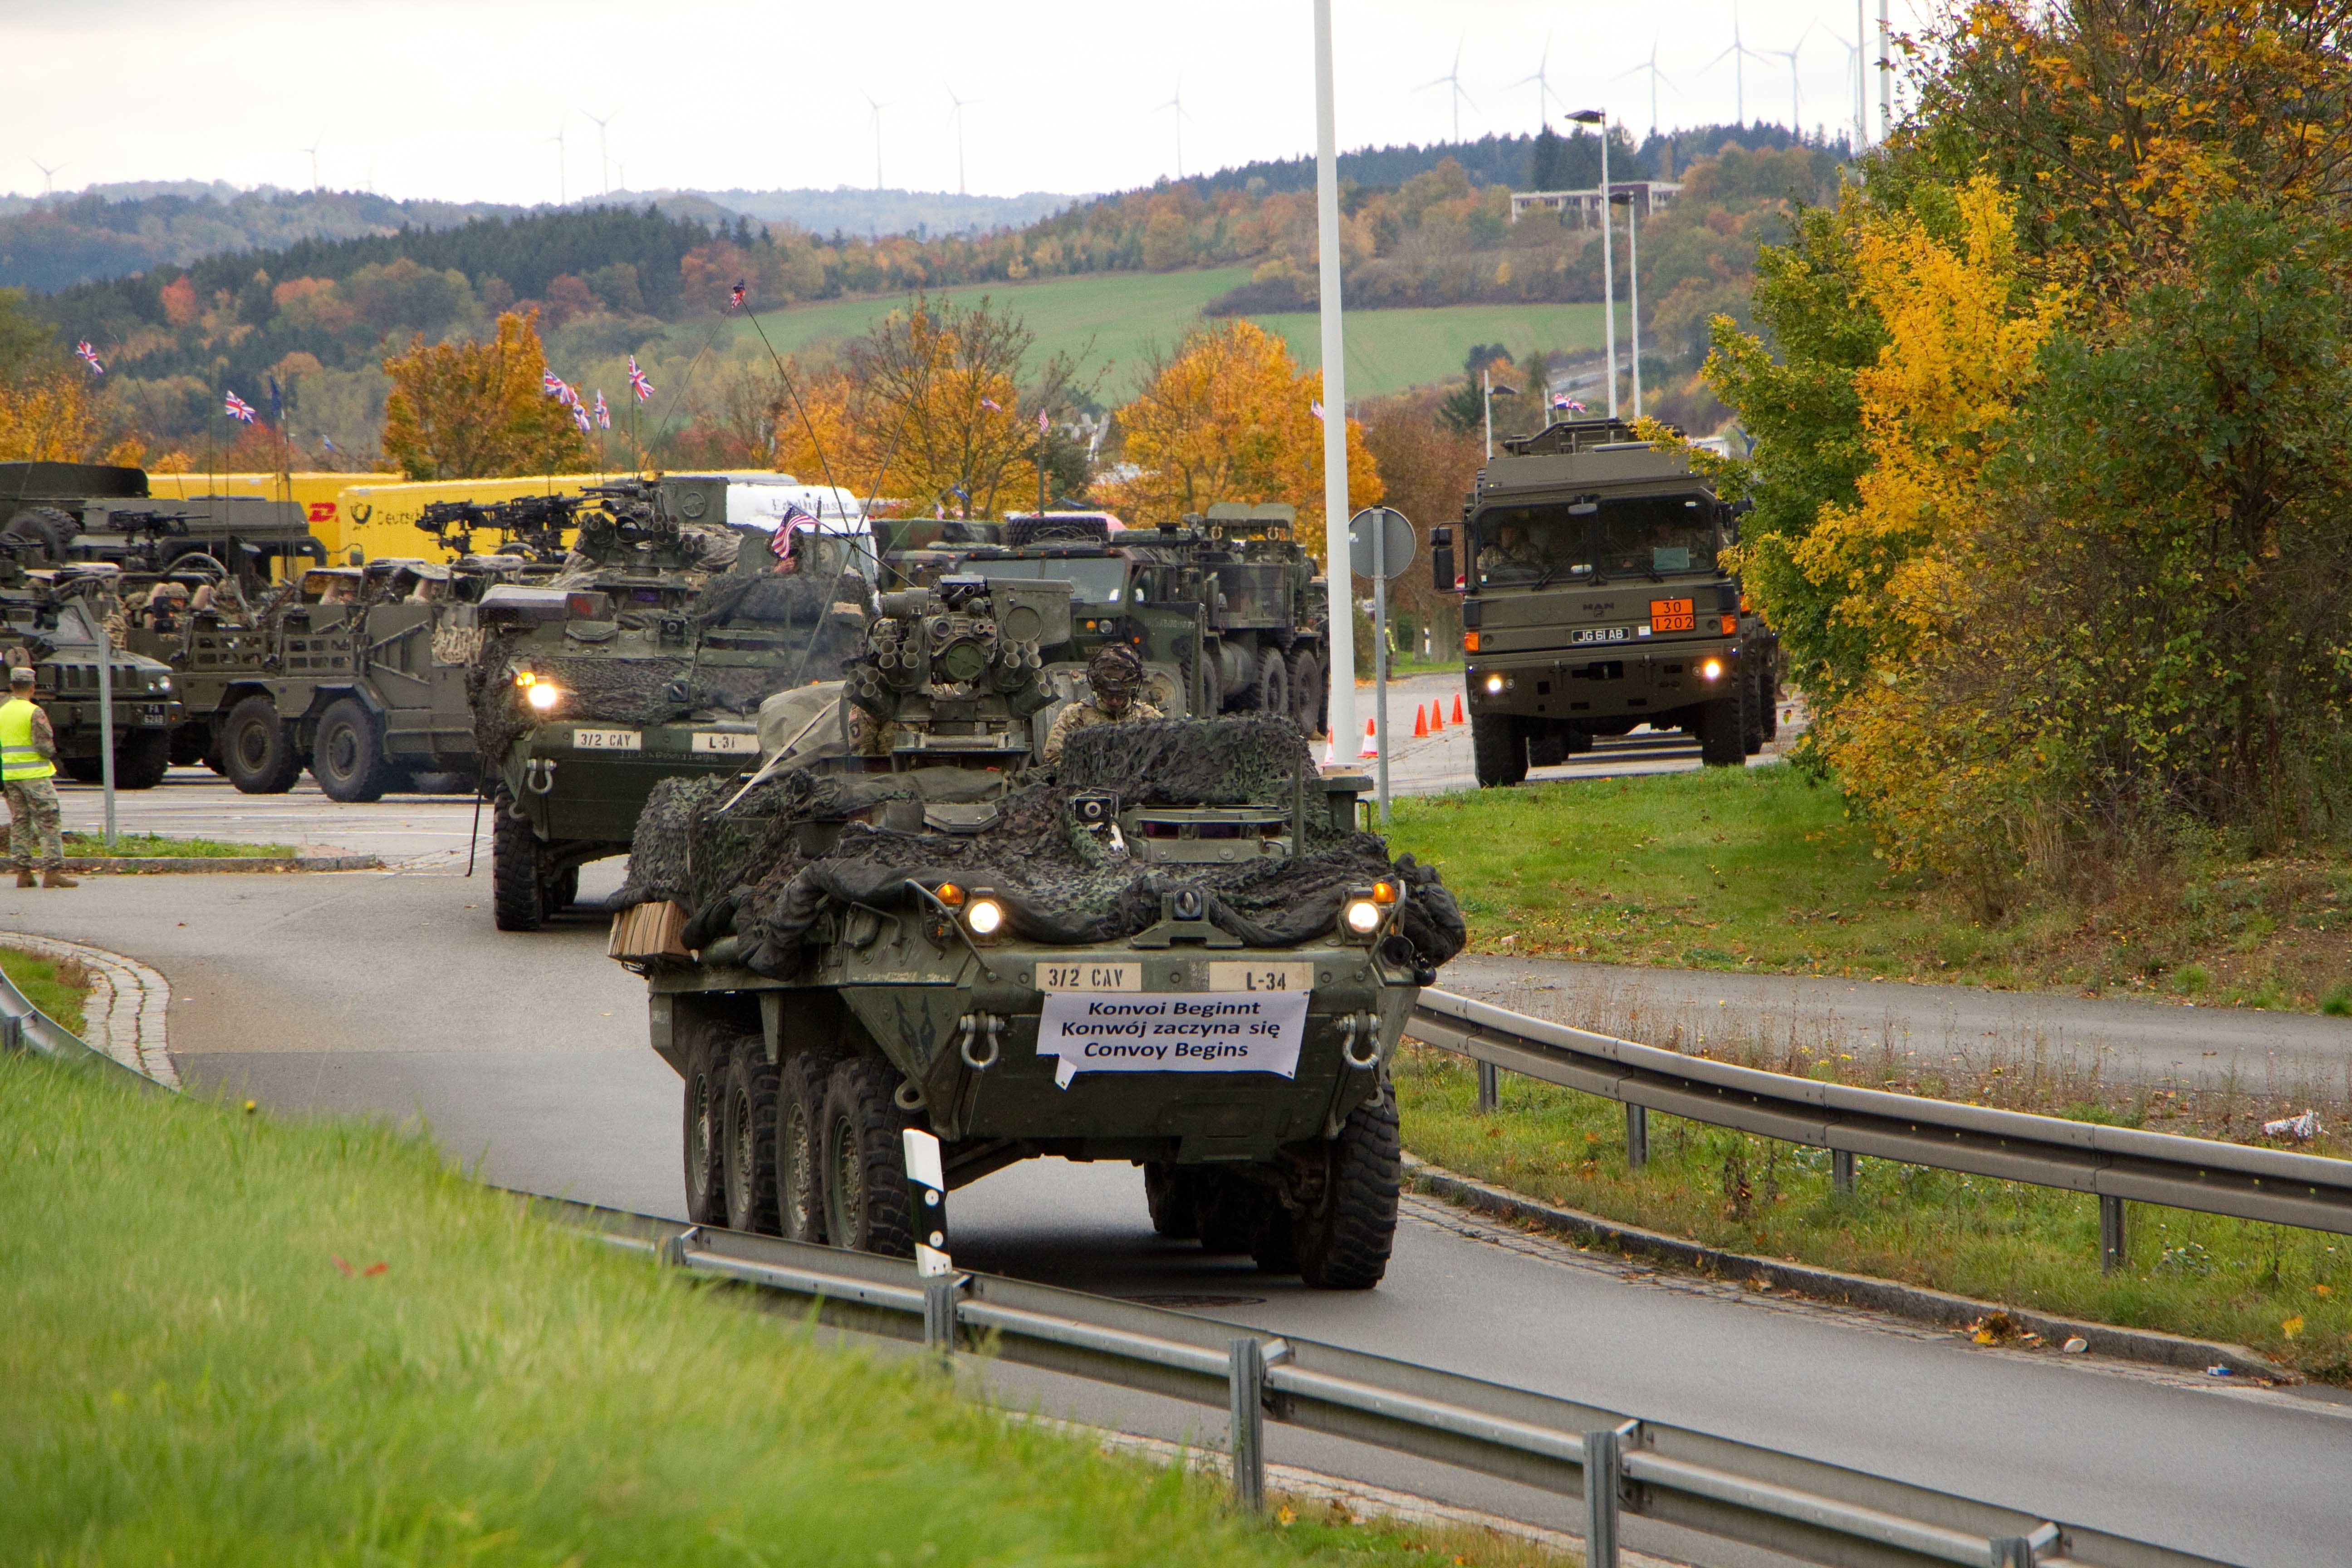 Task Force Wolfpack, comprised mainly of 3d Squadron, 2d Cavalry Regiment, U.S. Army with elements from Field Artillery Squadron, 2CR, the Regimental Engineer Squadron, 2CR and the Balaklava Squadron, Light Dragoons Regiment, British Army, leave a rest stop in Germany Oct. 11, 2017 during their 1,100 km road march from Rose Barracks, Germany to Orzysz, Poland. The Troops are heading to Poland to be part of Battle Group Poland in support of NATO's enhanced Forward Presence initiative.